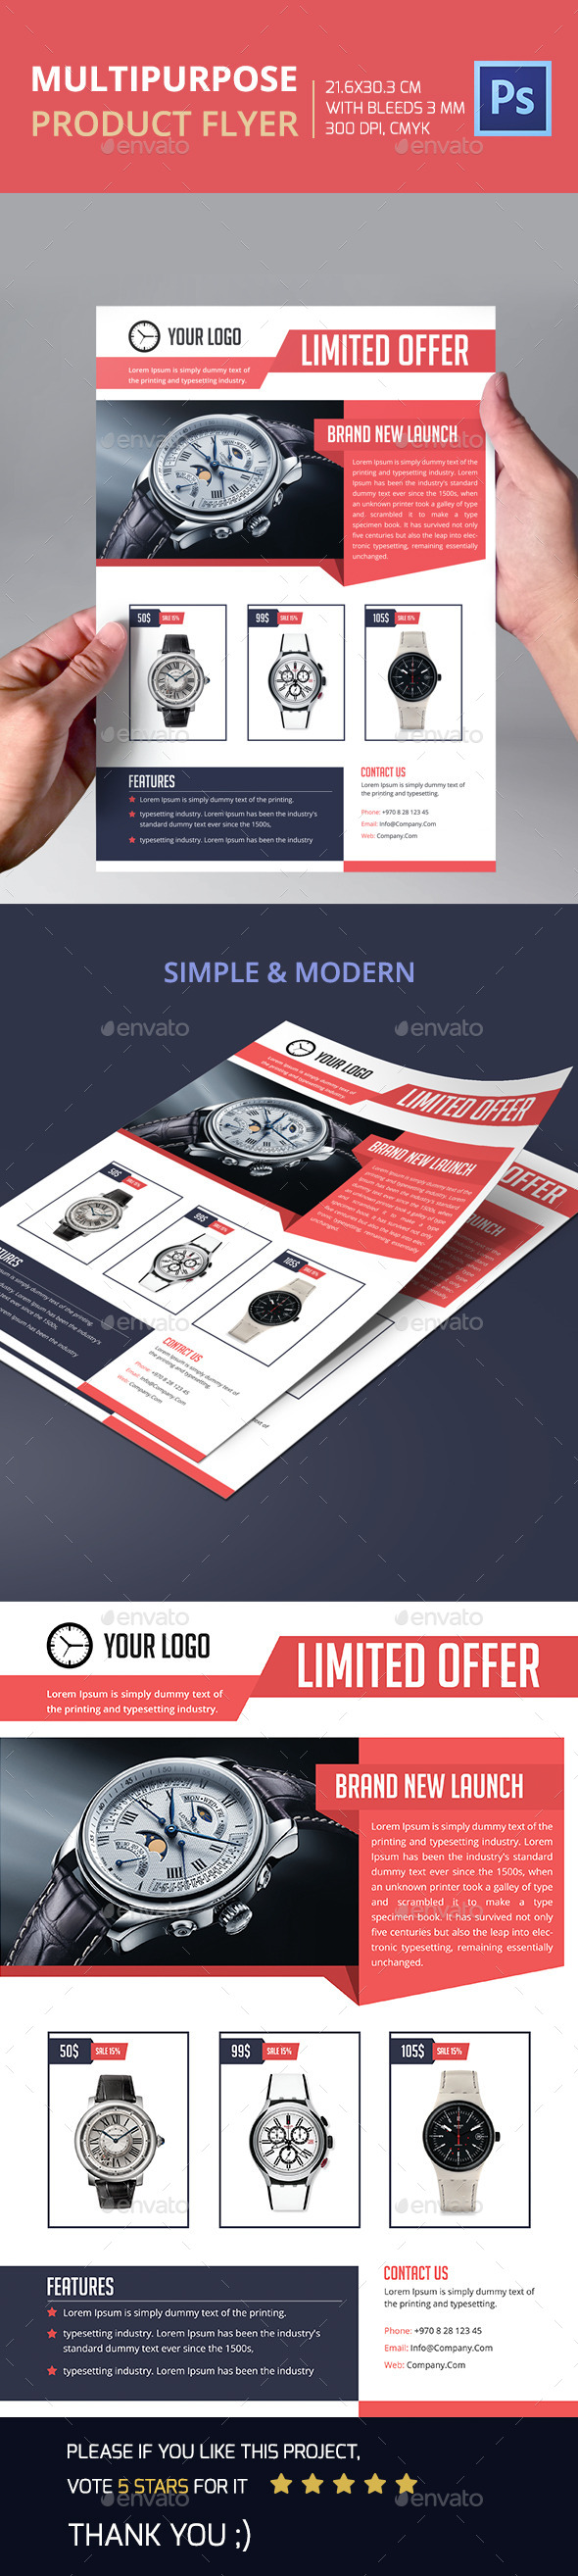 Multipurpose  Product Flyer - Corporate Flyers